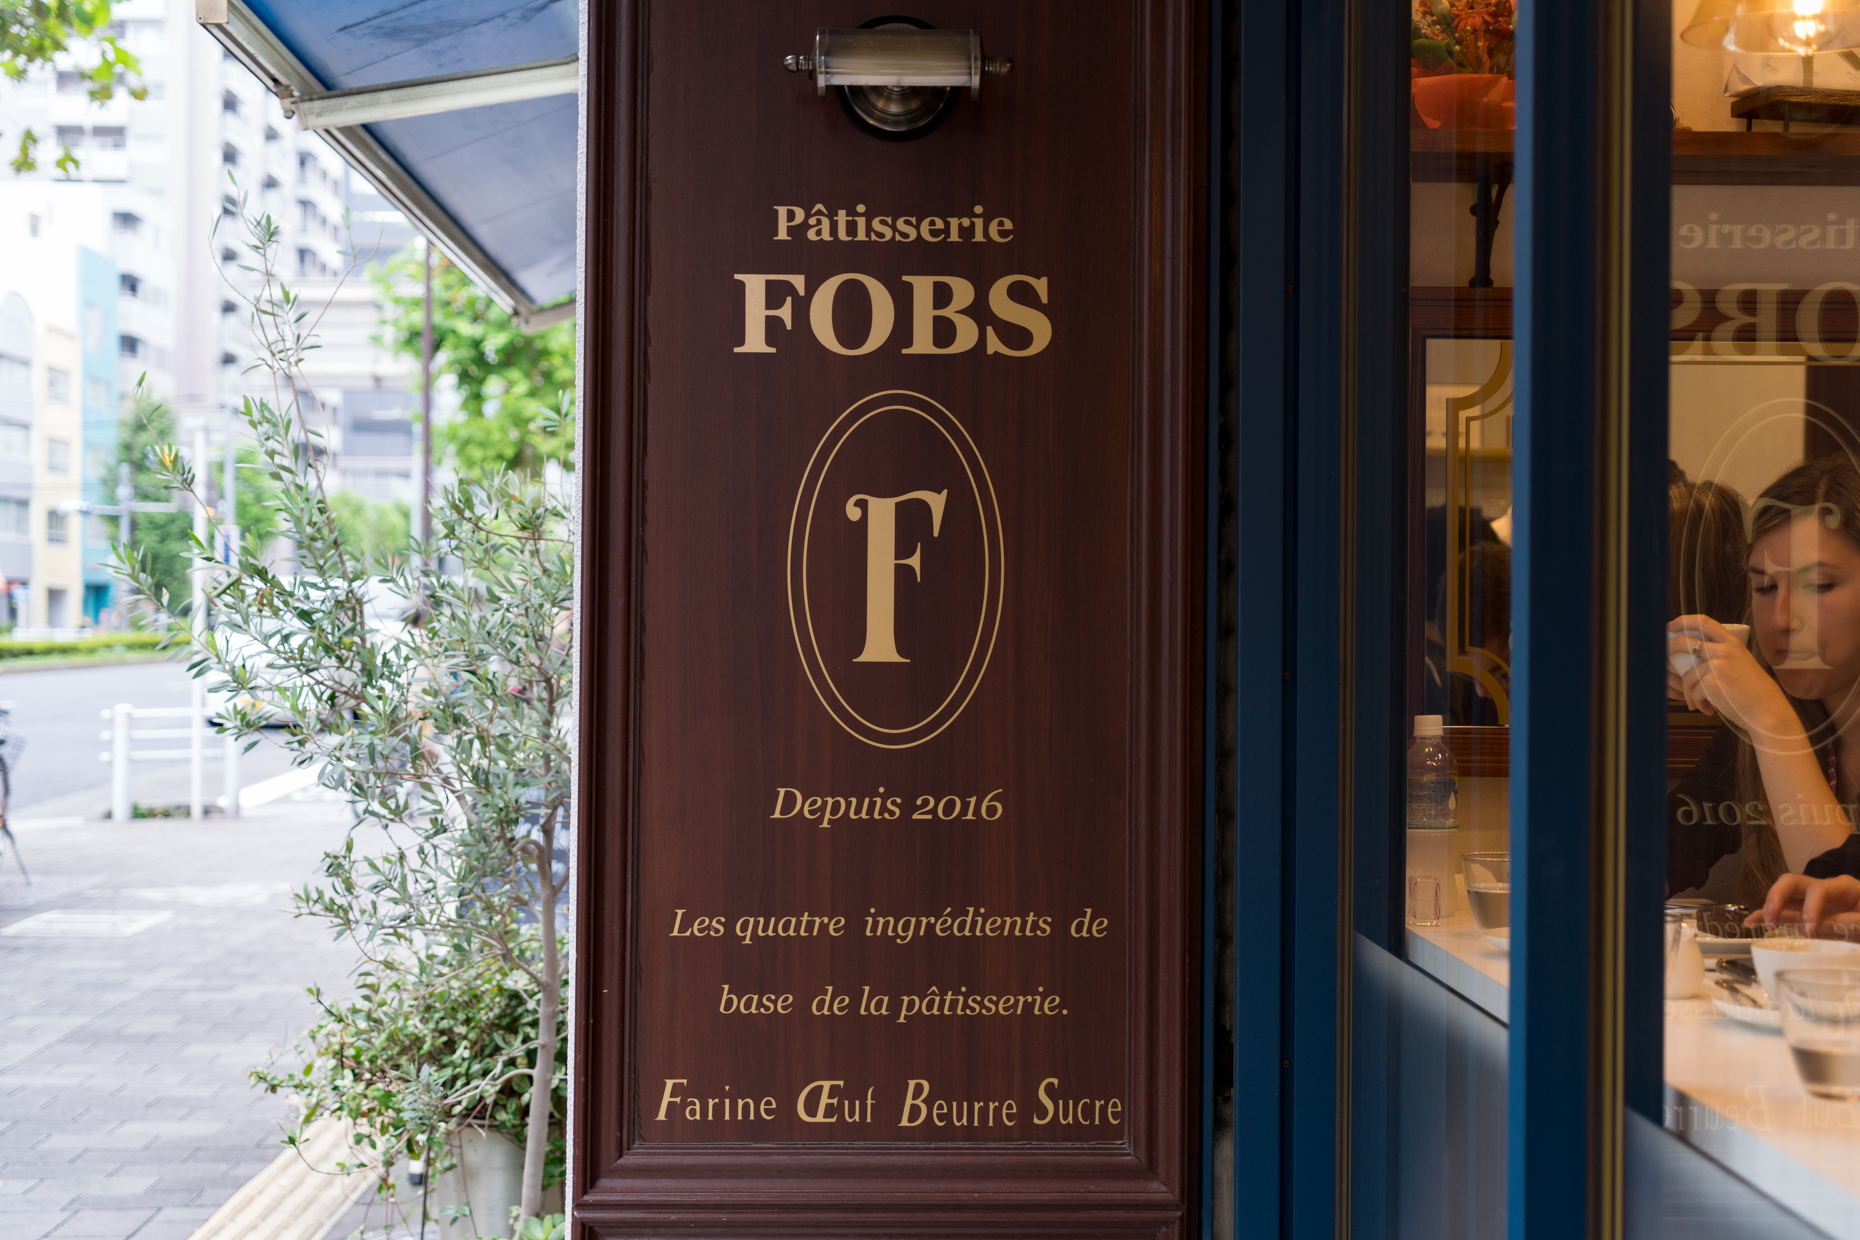 fobs-1